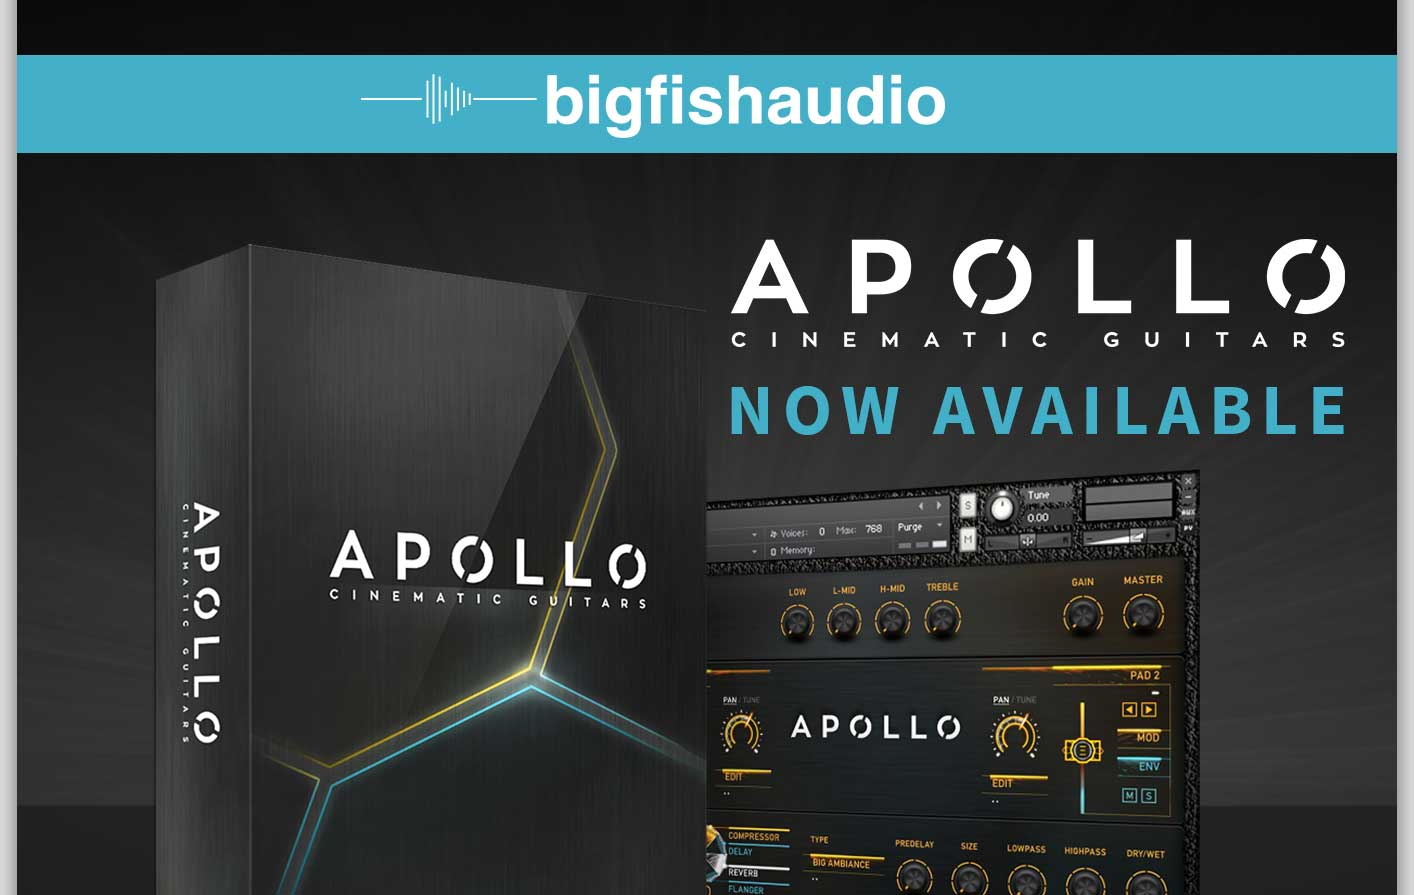 Apollo Cinematic Guitars now available!